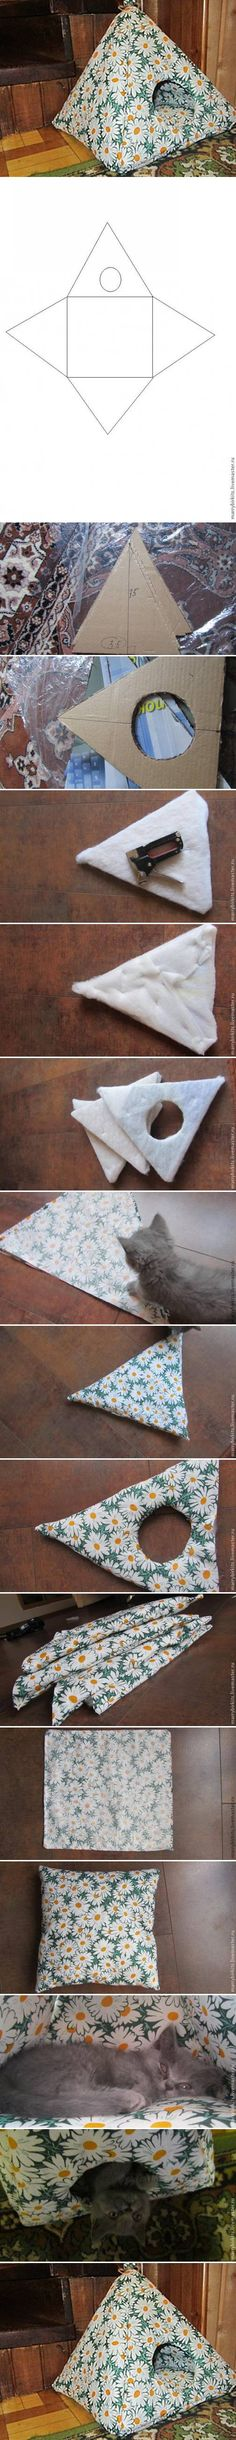 DIY House for Cat - this is gorgeous!